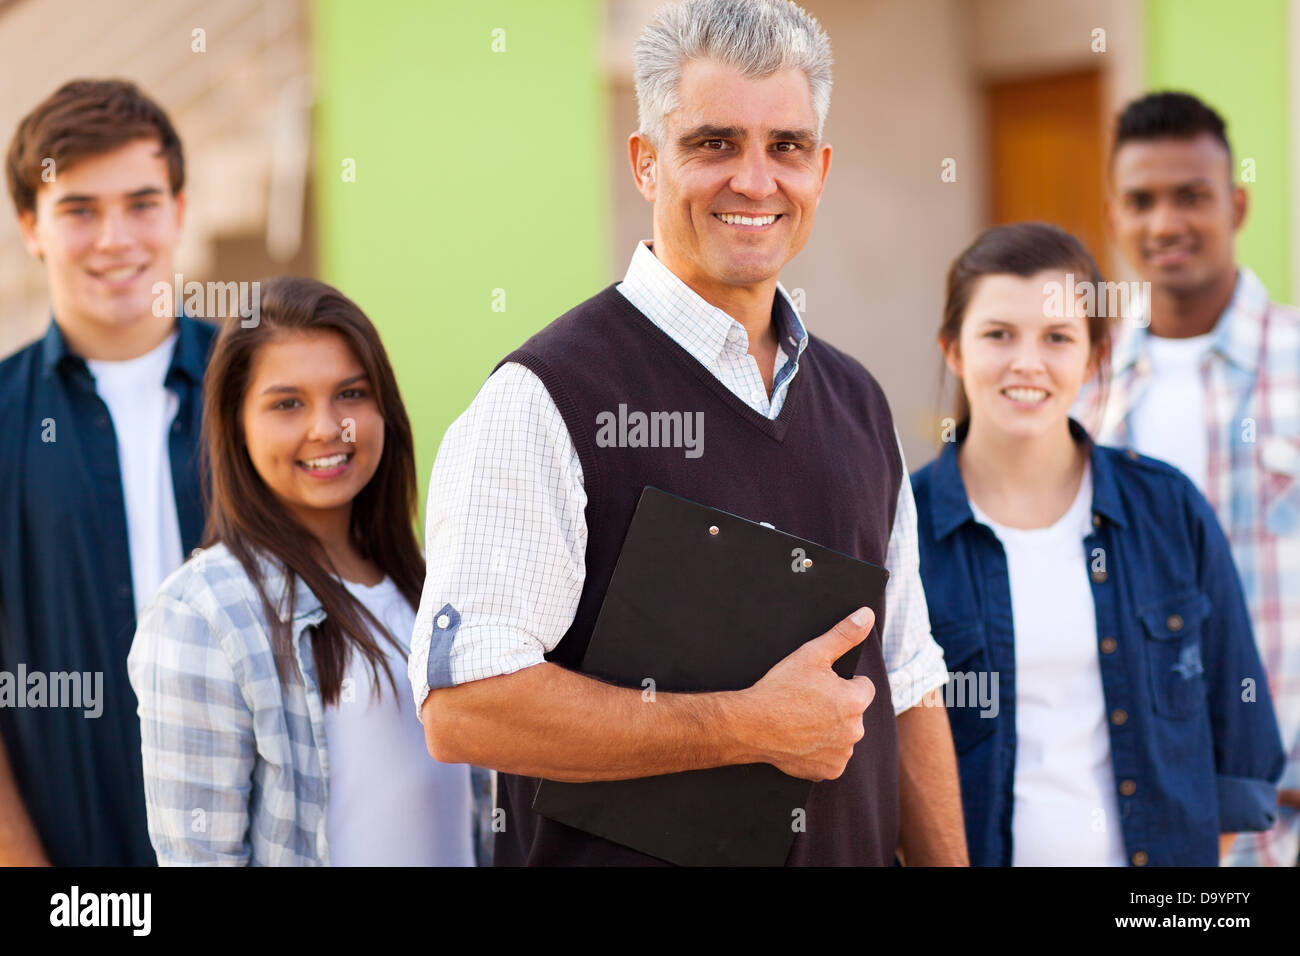 portrait of smiling high school teacher and students - Stock Image